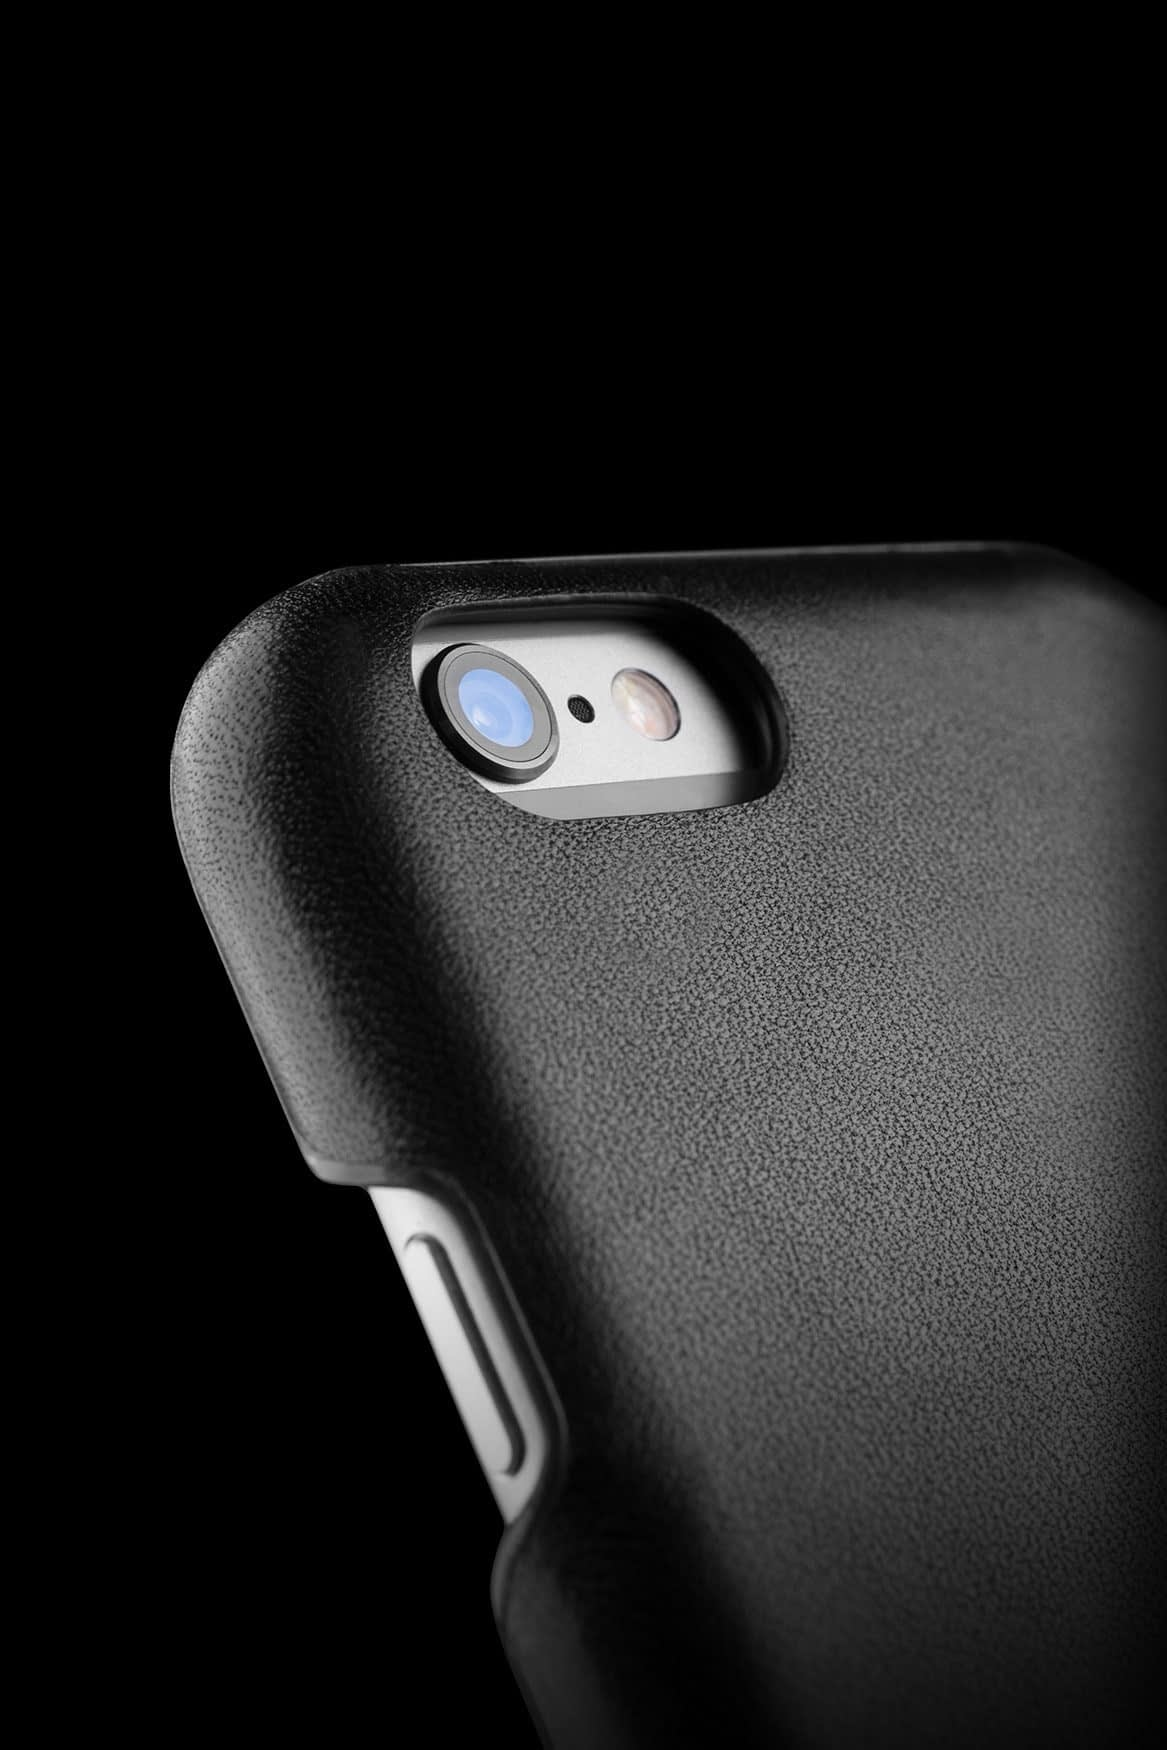 Leather Case for iPhone 6s Black 007